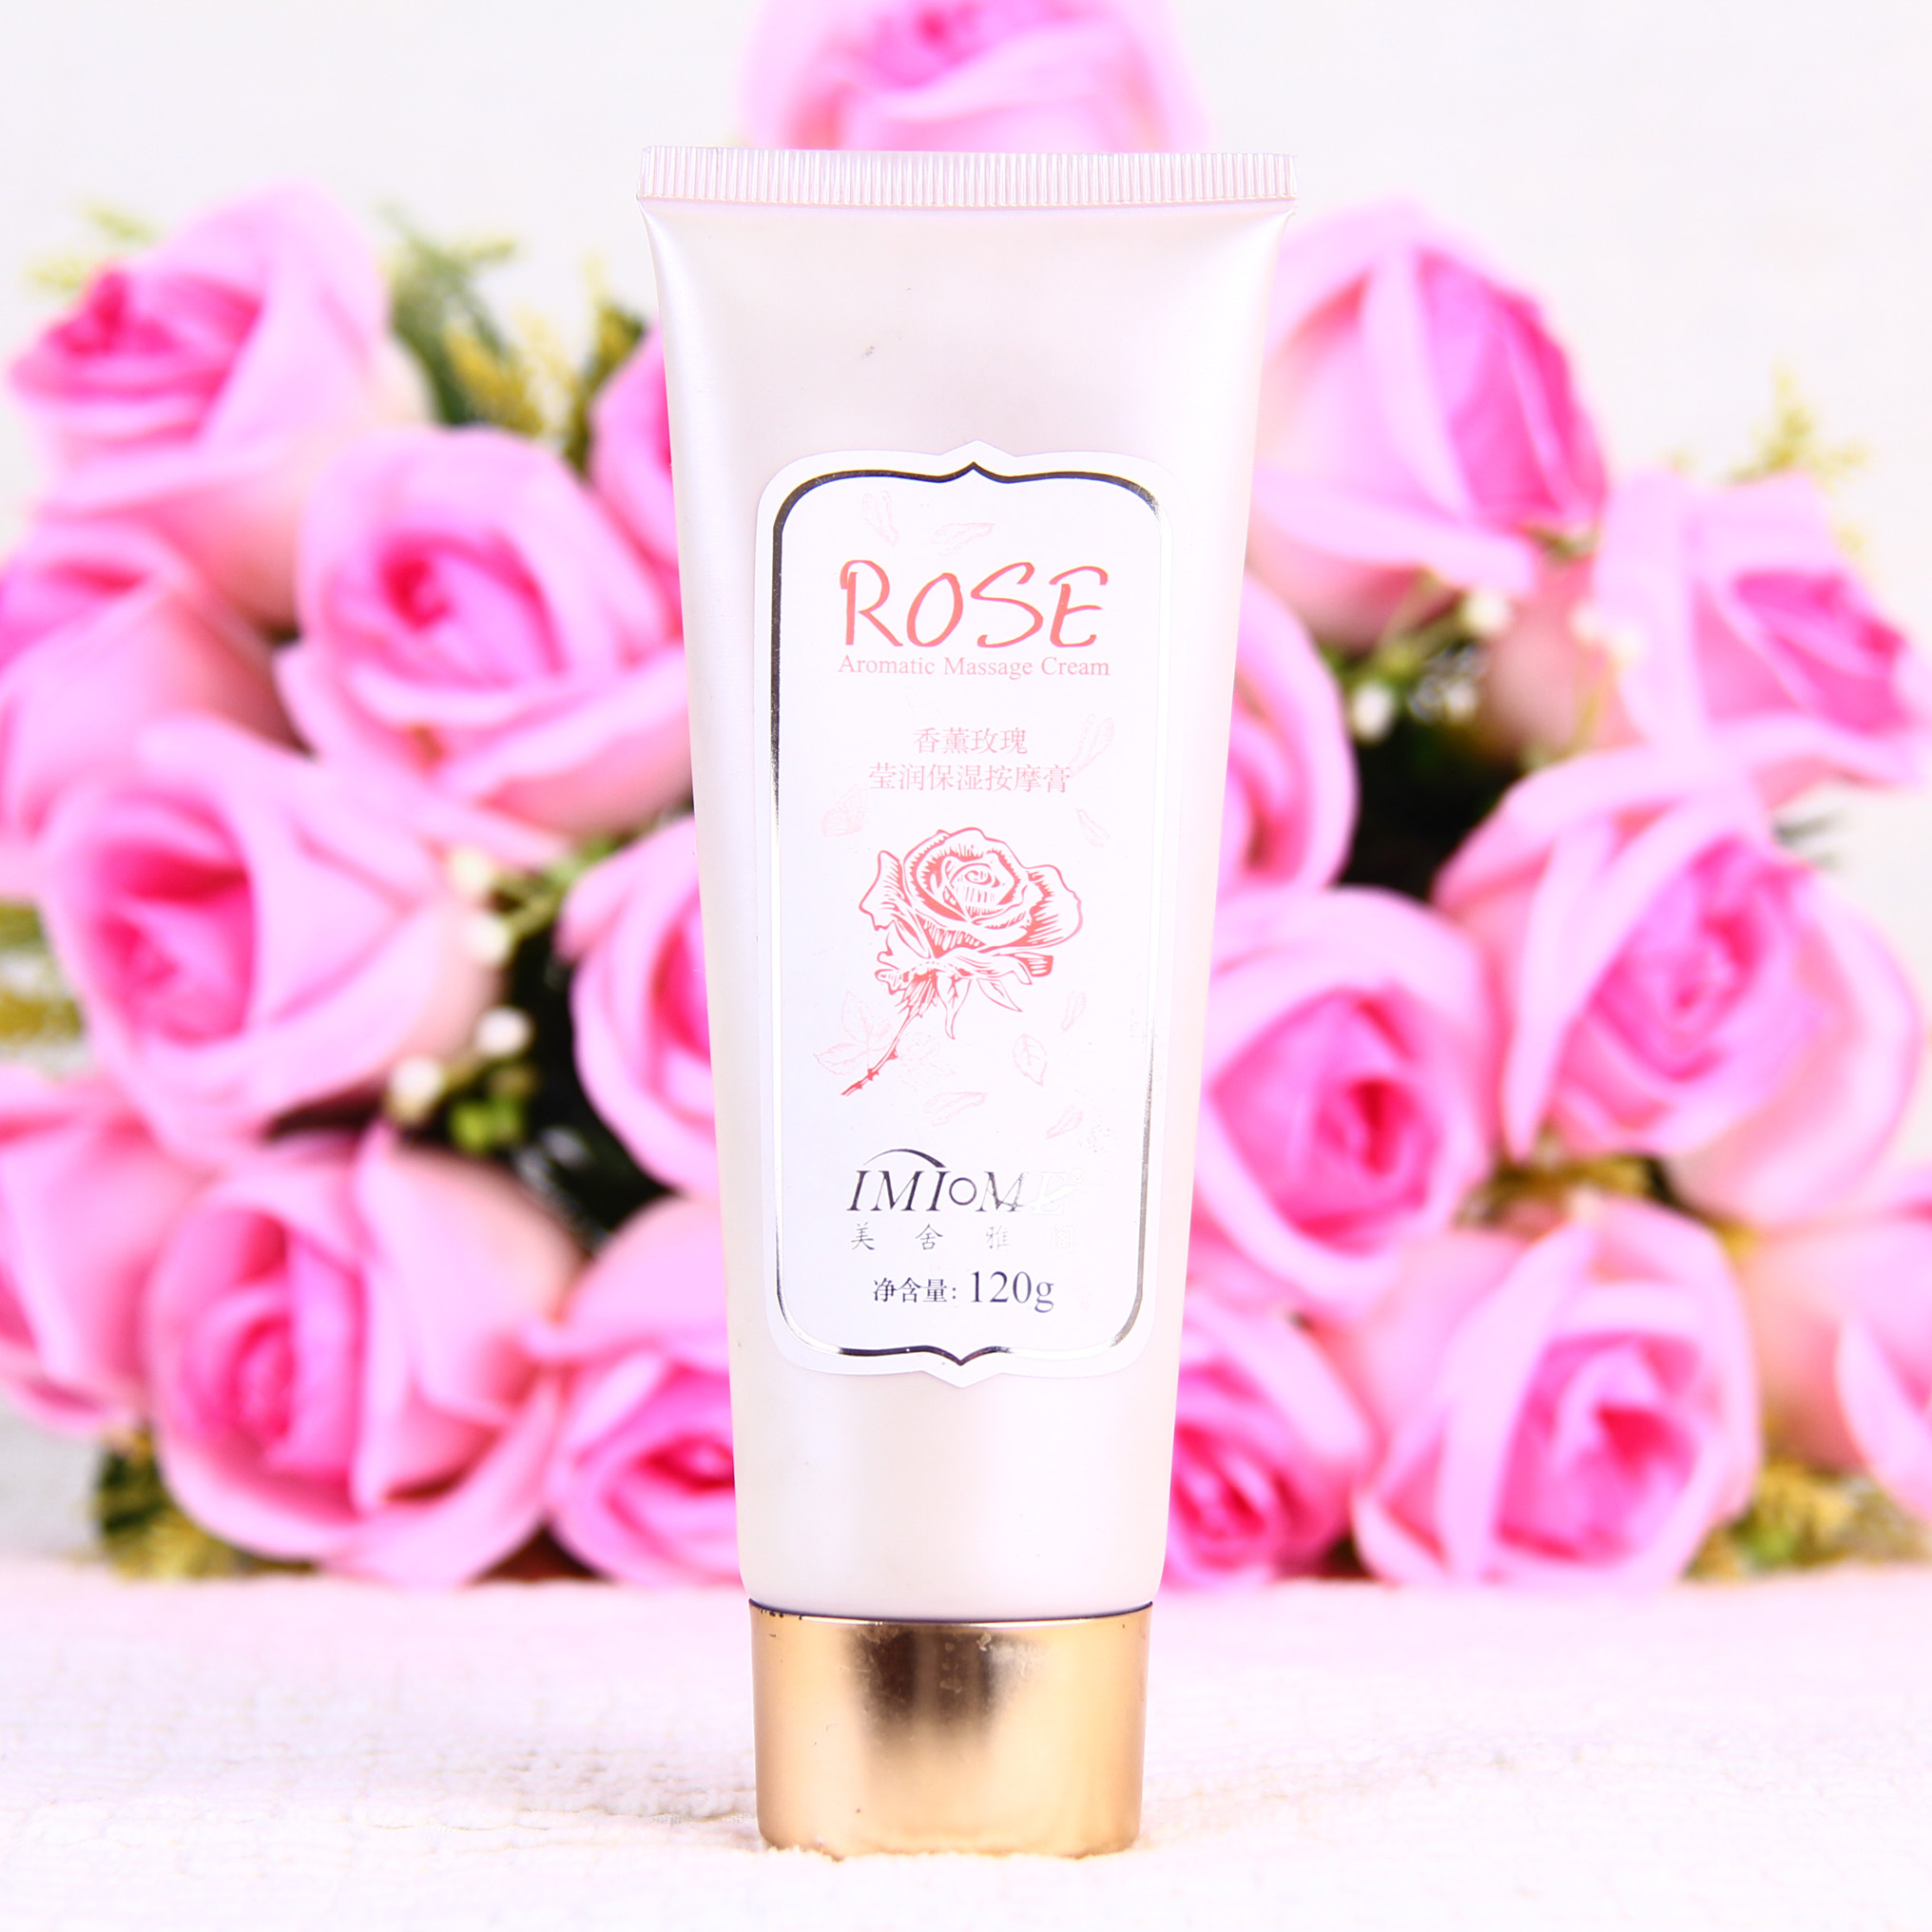 Mercer accord counter genuine aromatherapy Rose Moisturizing Massage Cream soothes the skin